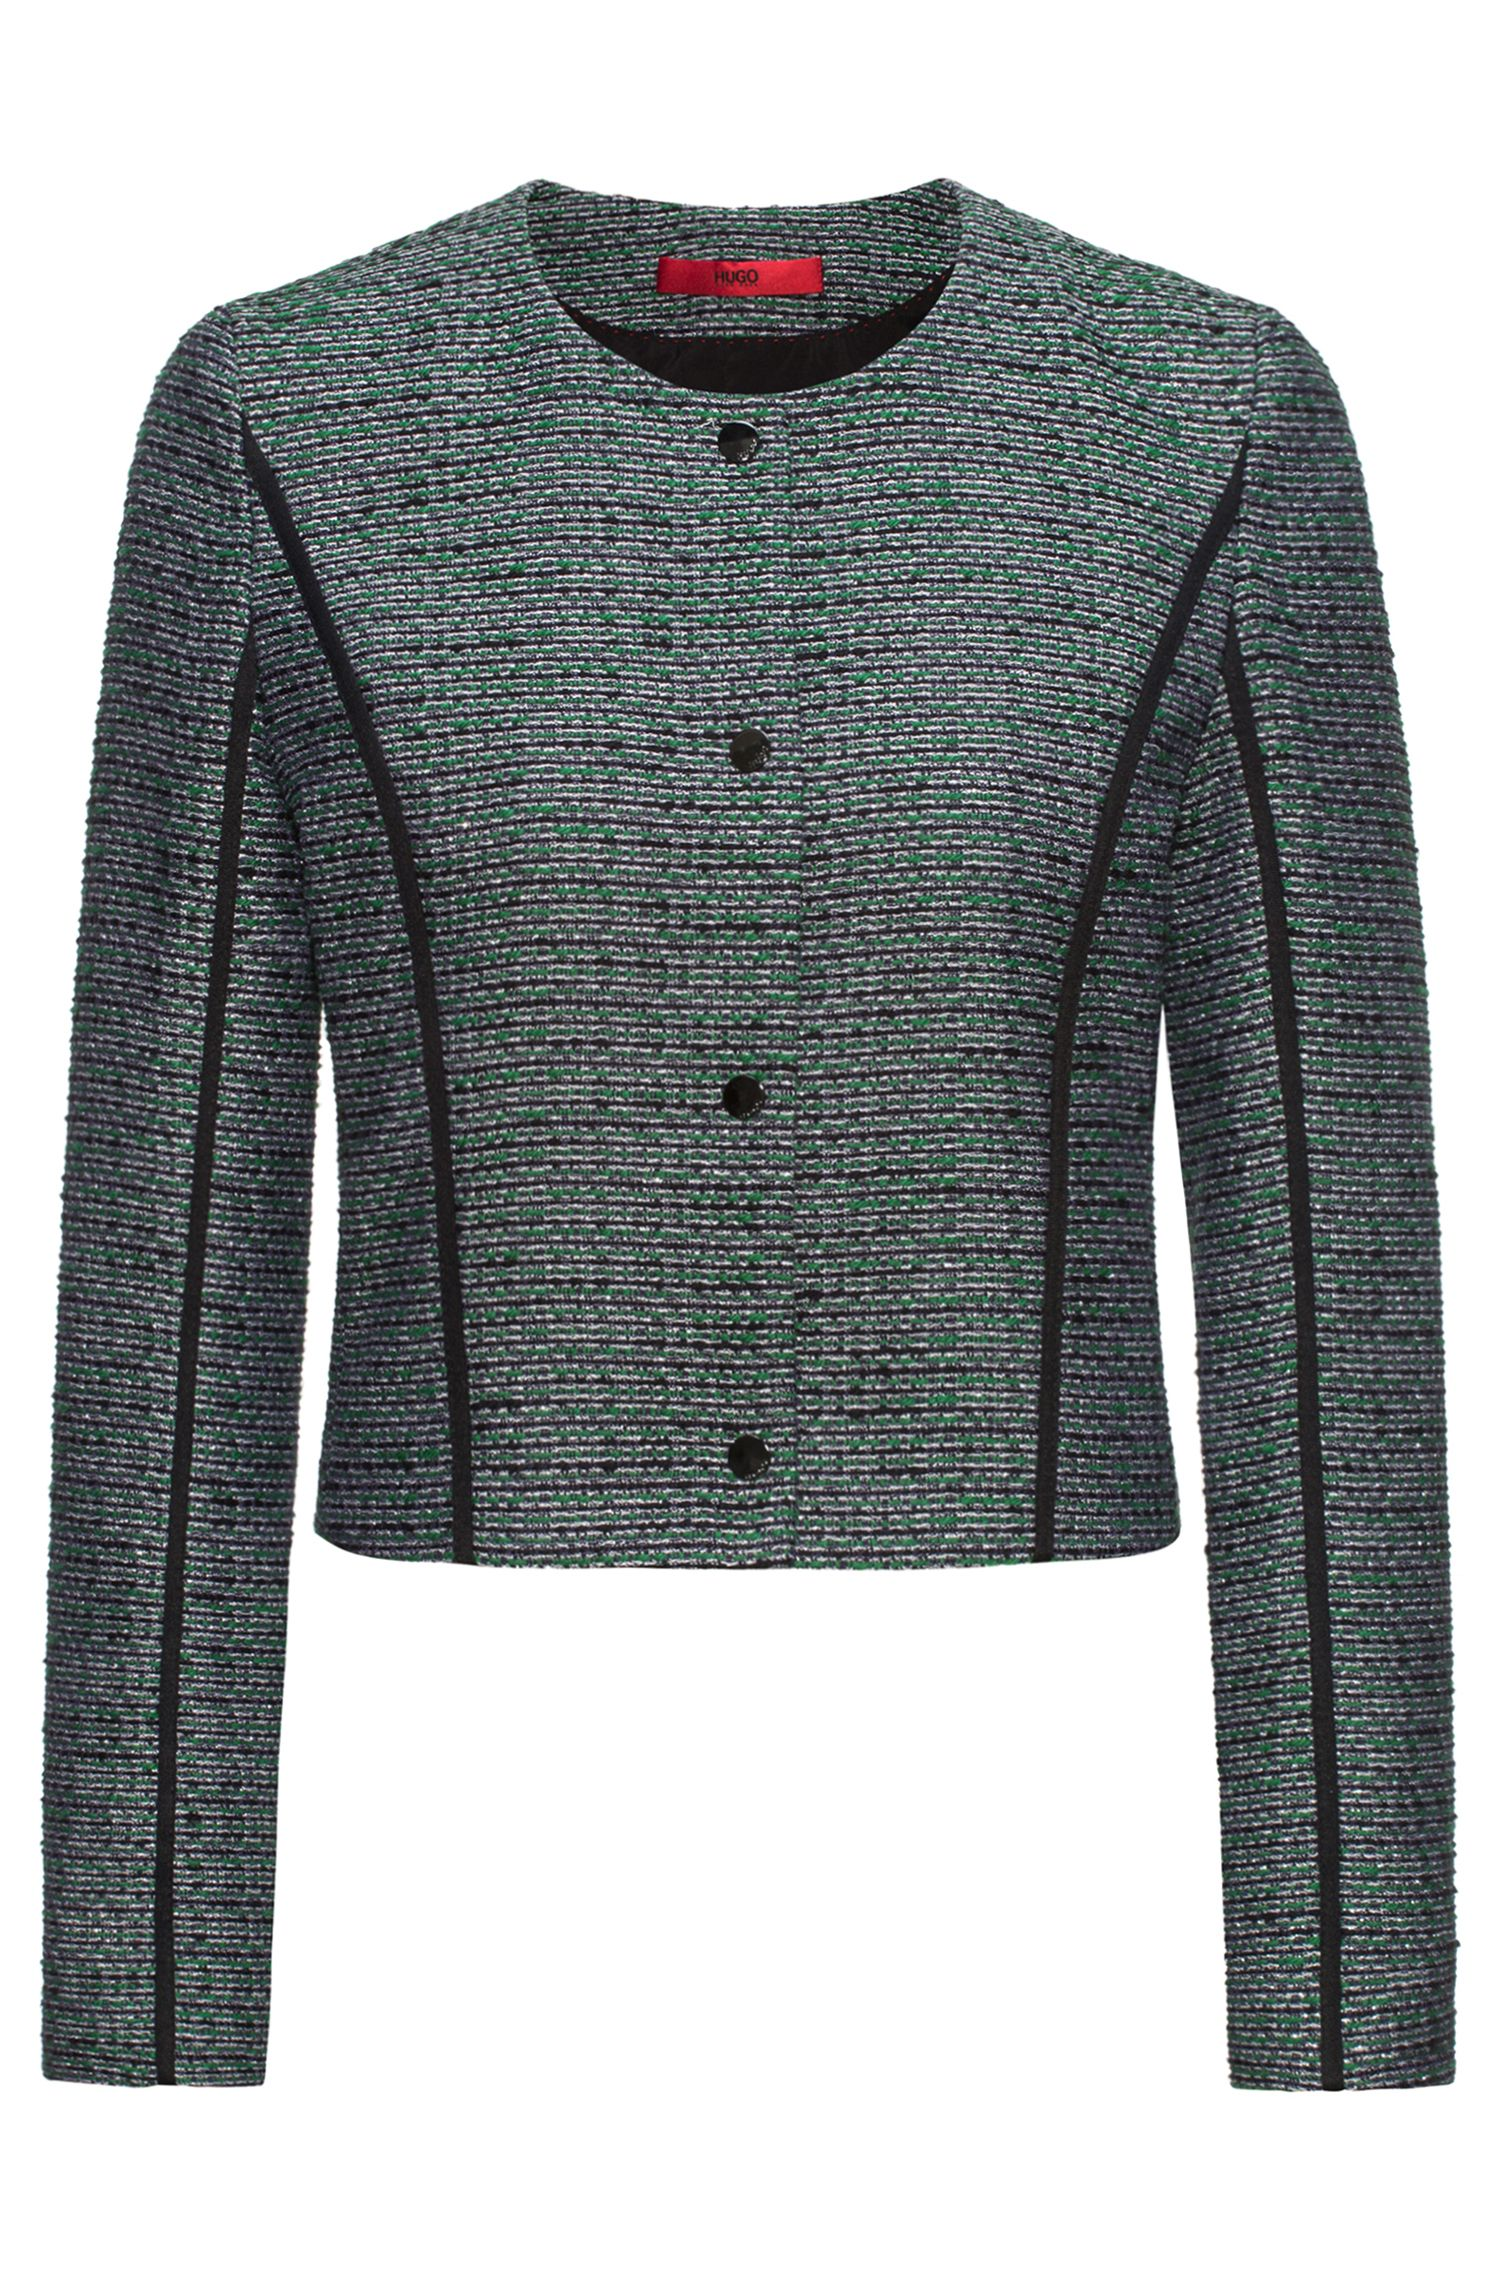 Chaquetilla relaxed fit en tweed con ribetes en contraste